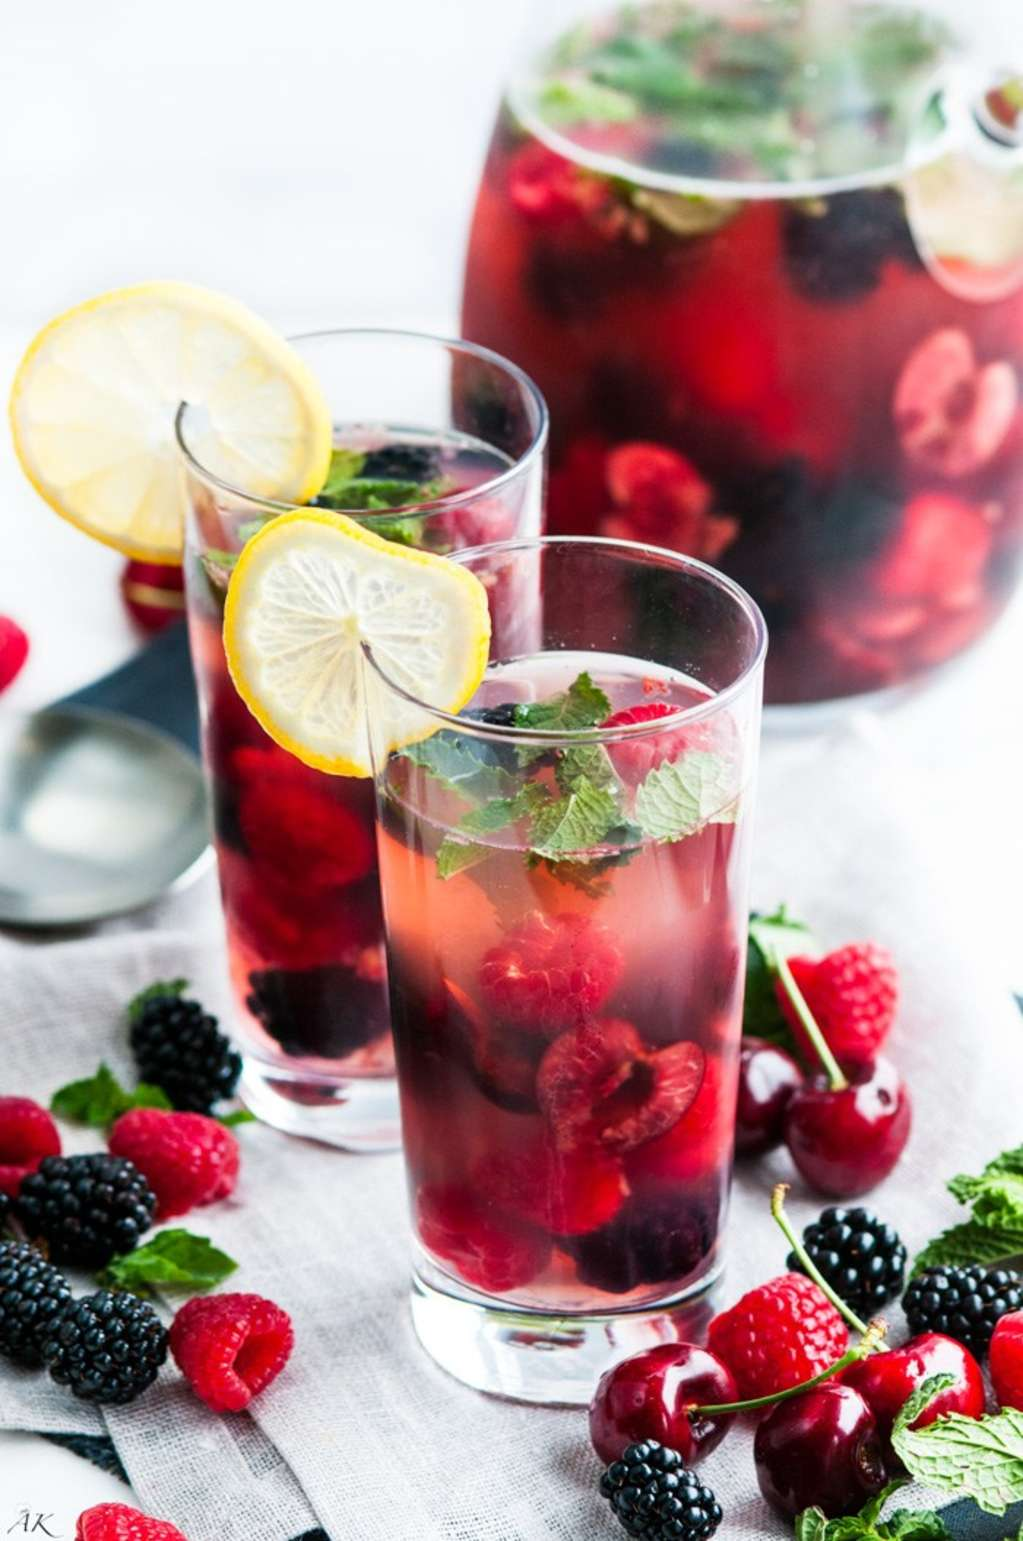 Put Those Cherries & Berries to Use with This Summer Sangria